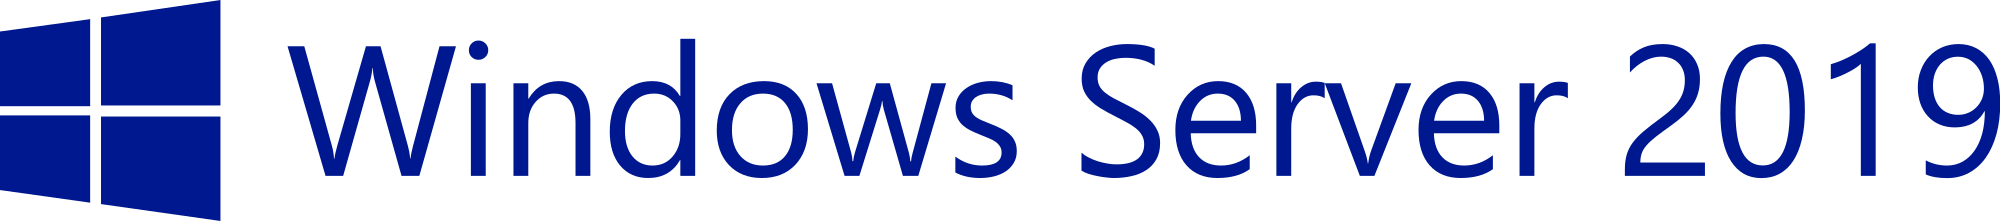 Windows Server 2019 logo